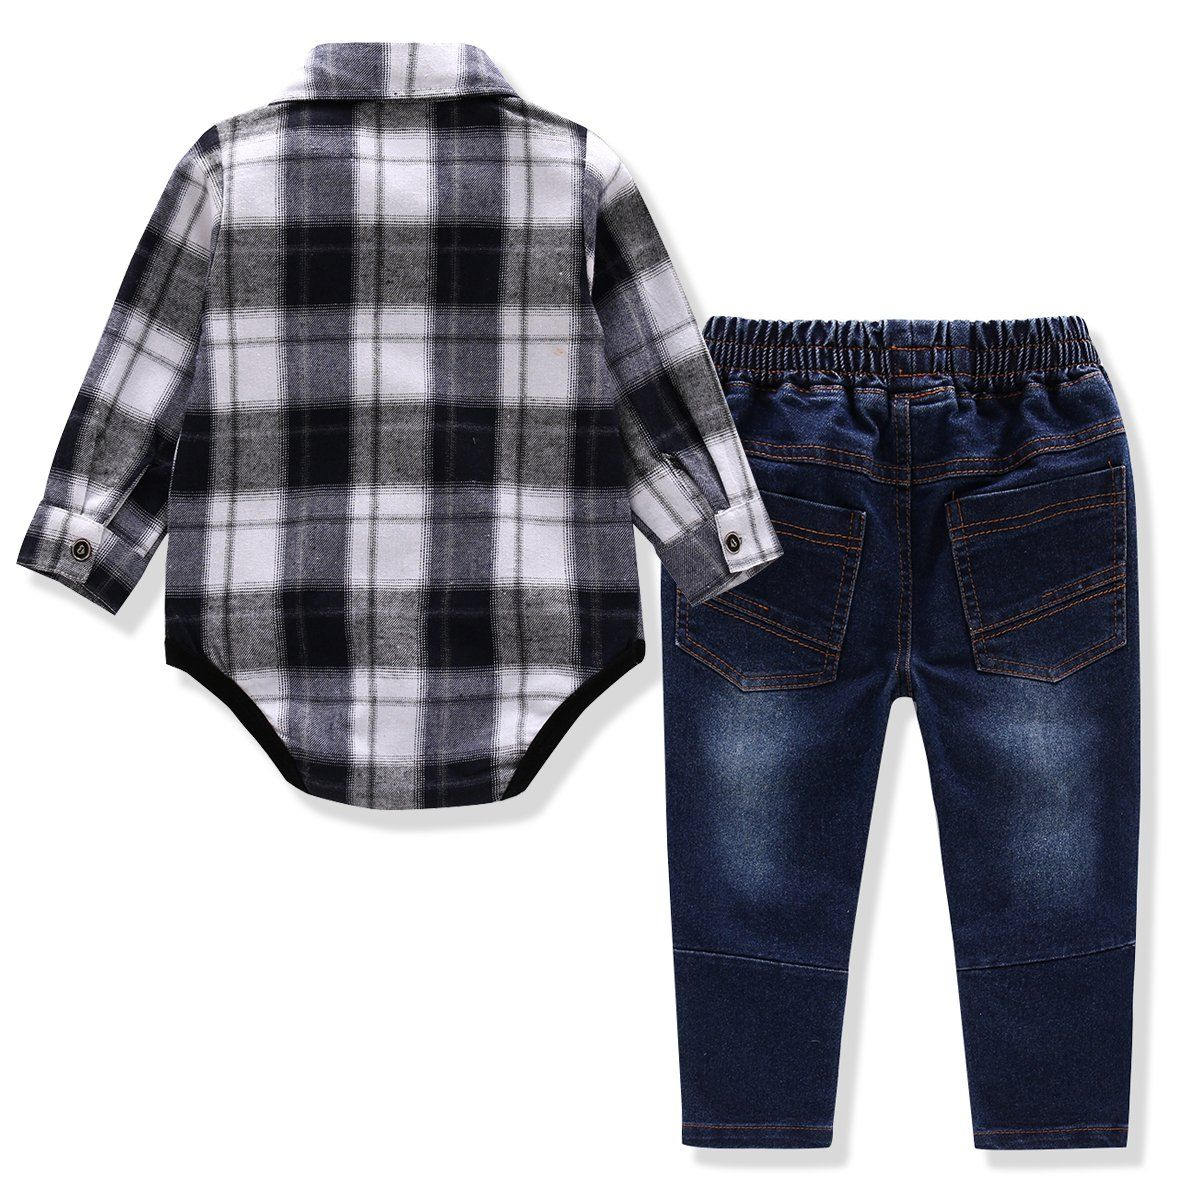 Flannel shirt for baby boy  Baby Boys  Pieces Clothes Set Bowtie Plaid Shirt Jeans Strap